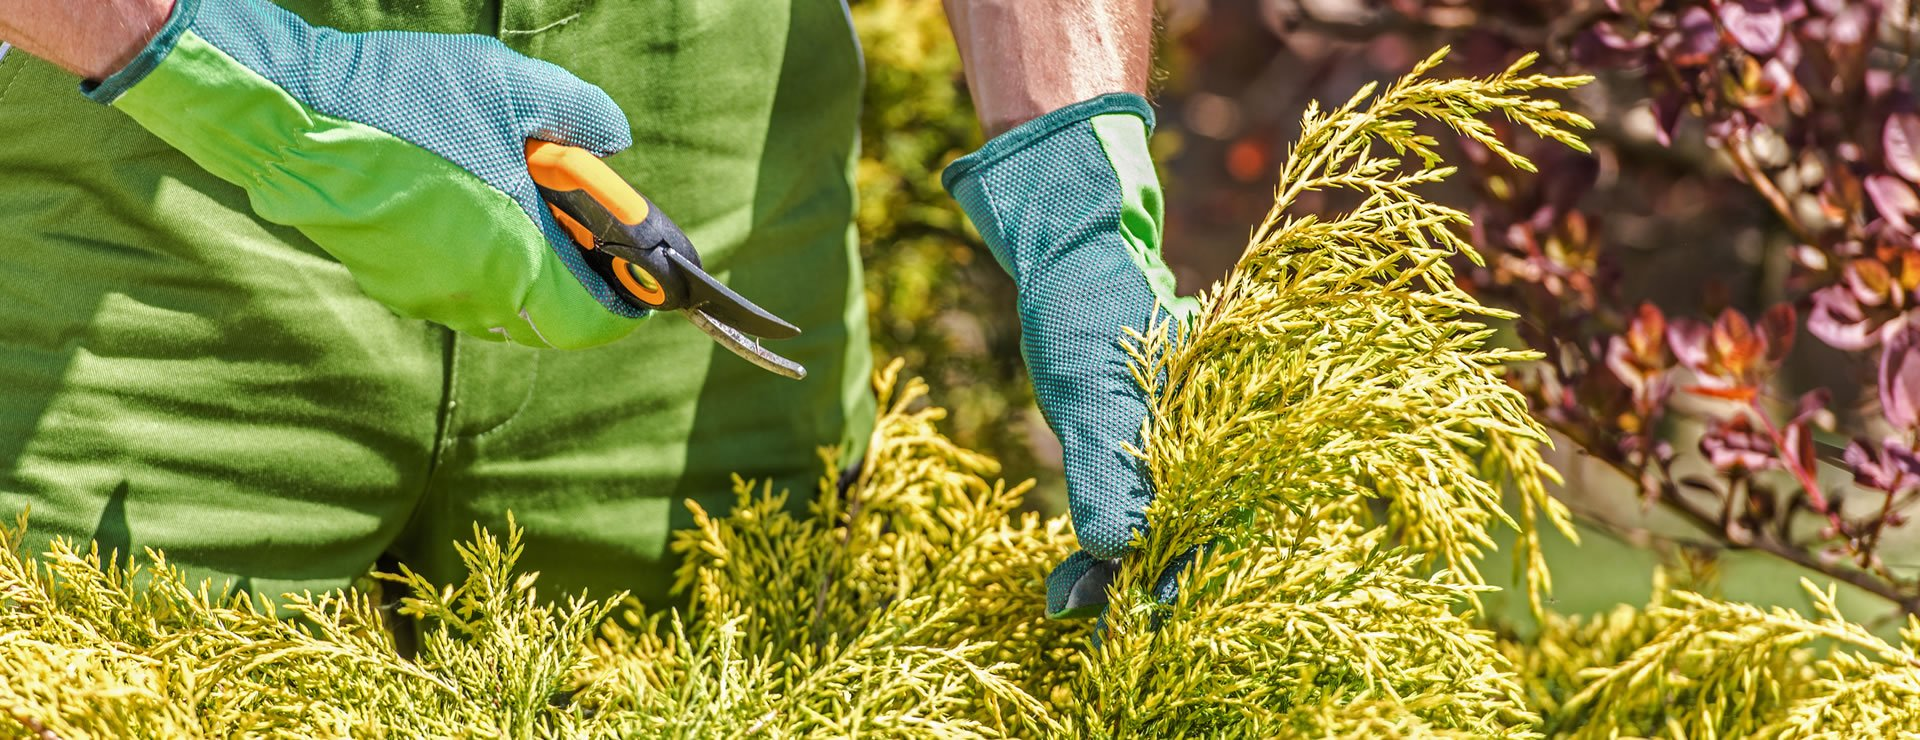 How to Maintain Hedges: DEALING WITH VINE WEEVIL (ii)